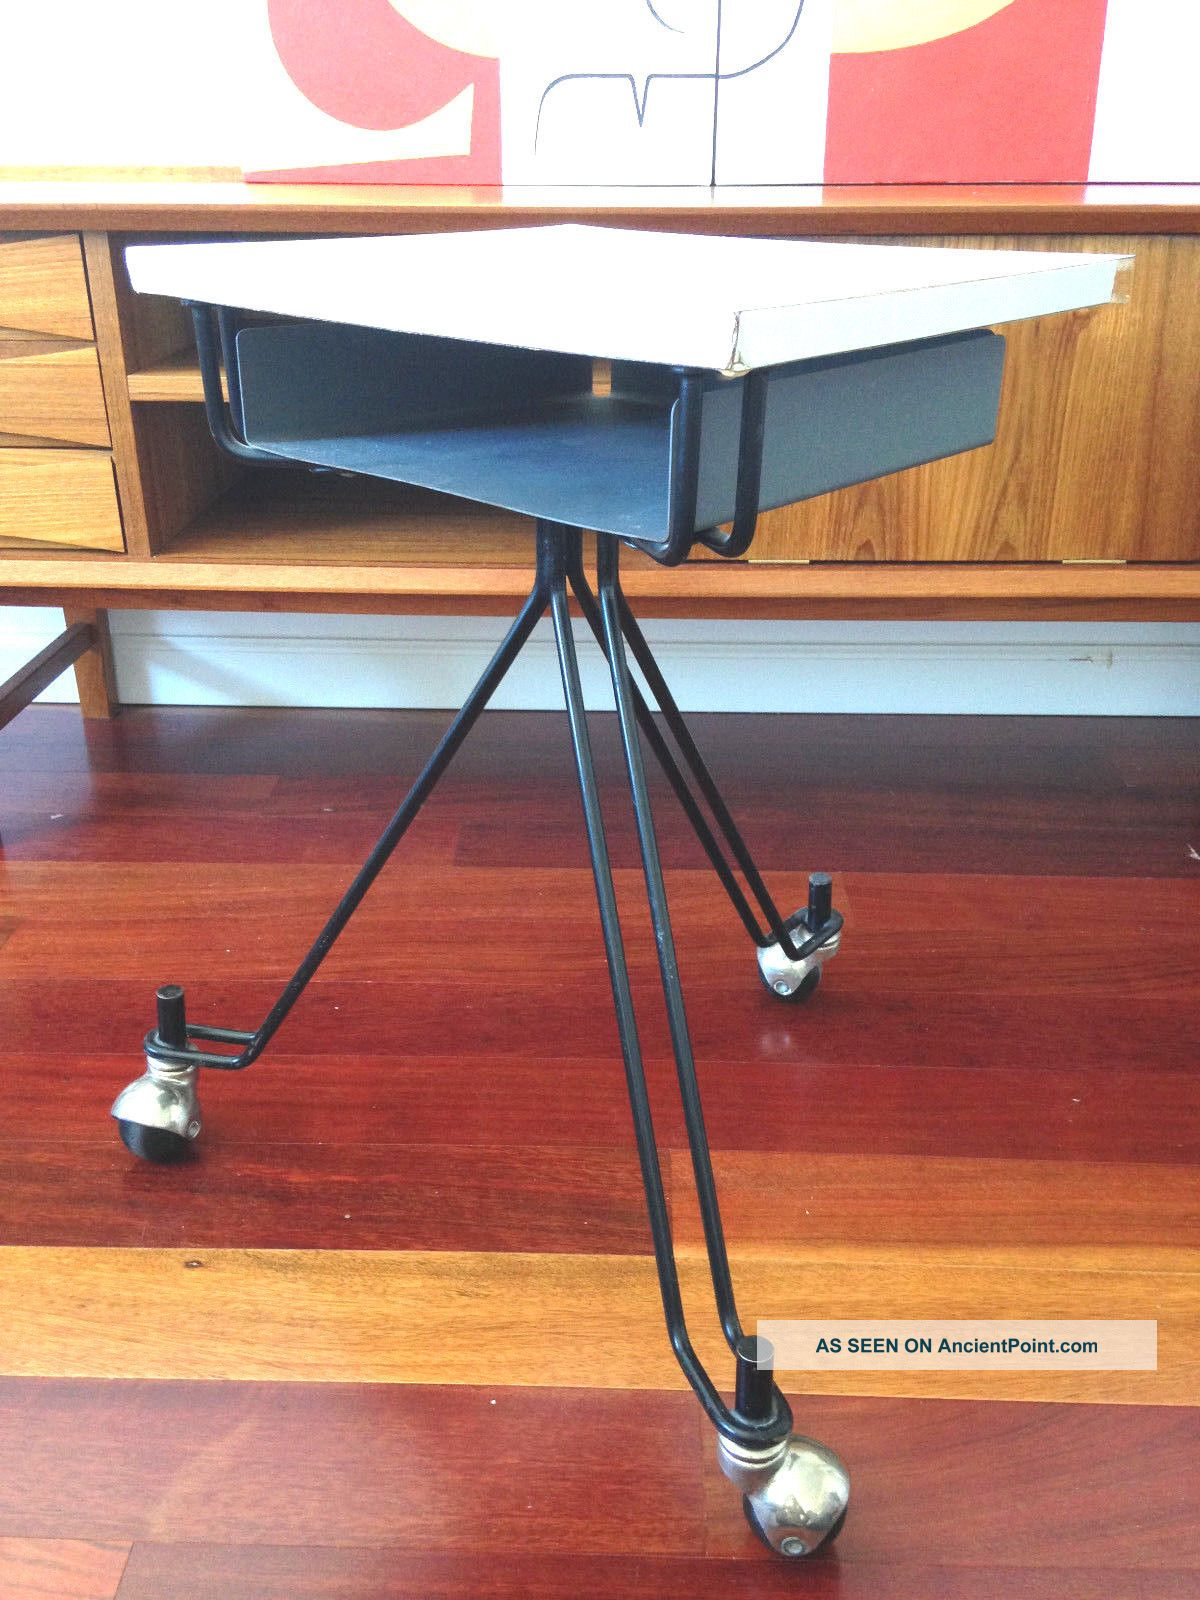 Eliot Noyes Ibm Telephone Rolling Table Dictating Stand Design Modern Post-1950 photo